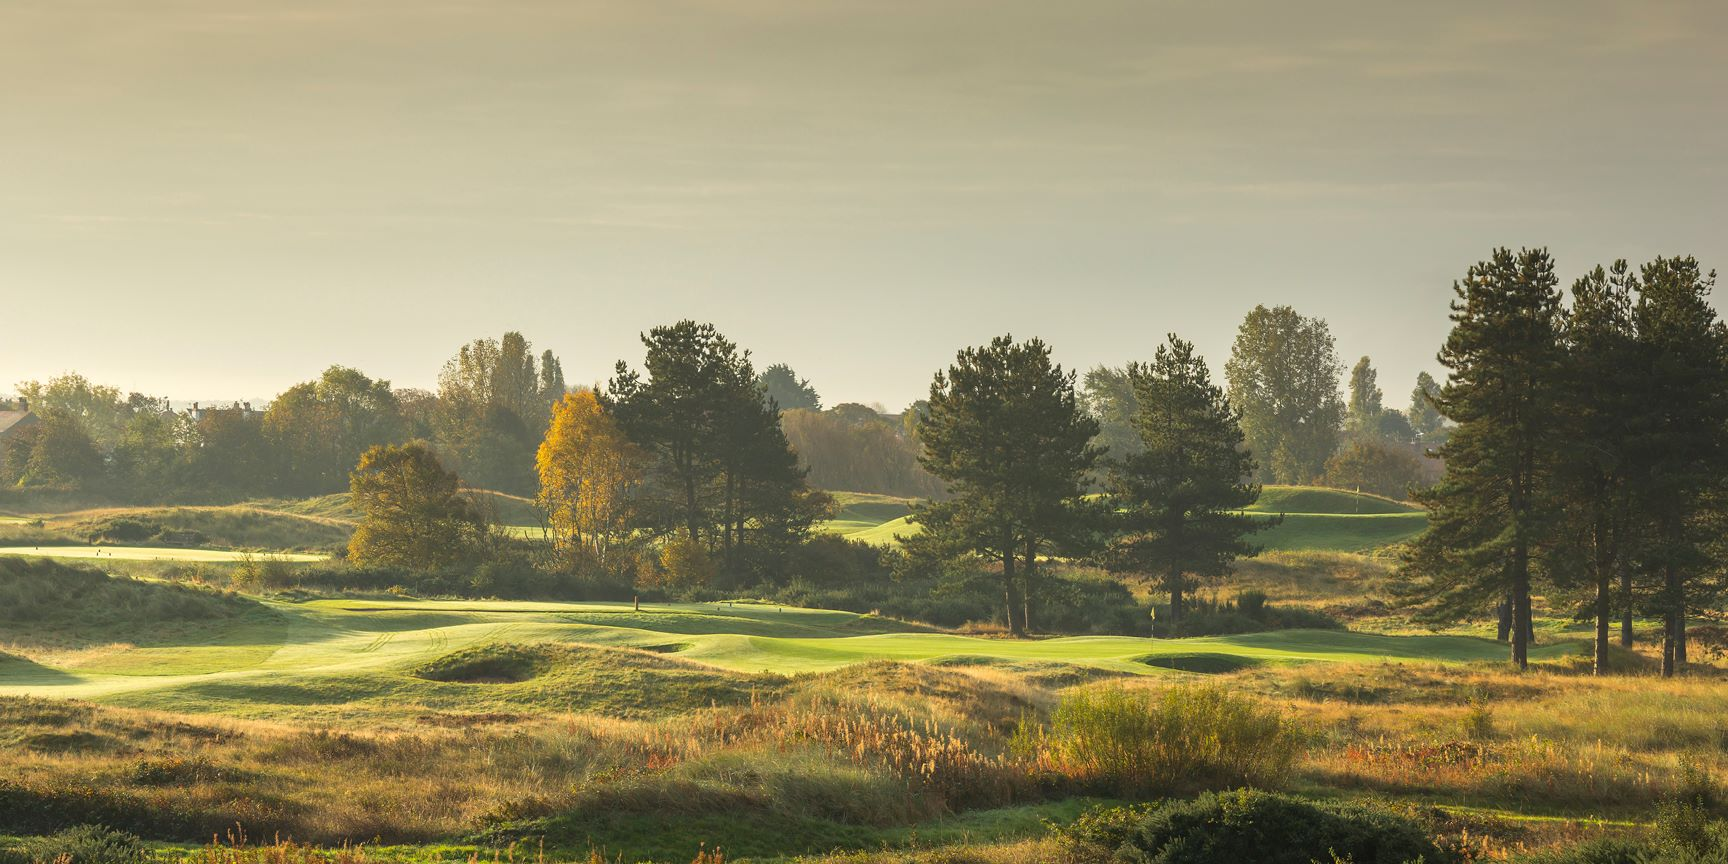 southport-anisdale-golf-club-28